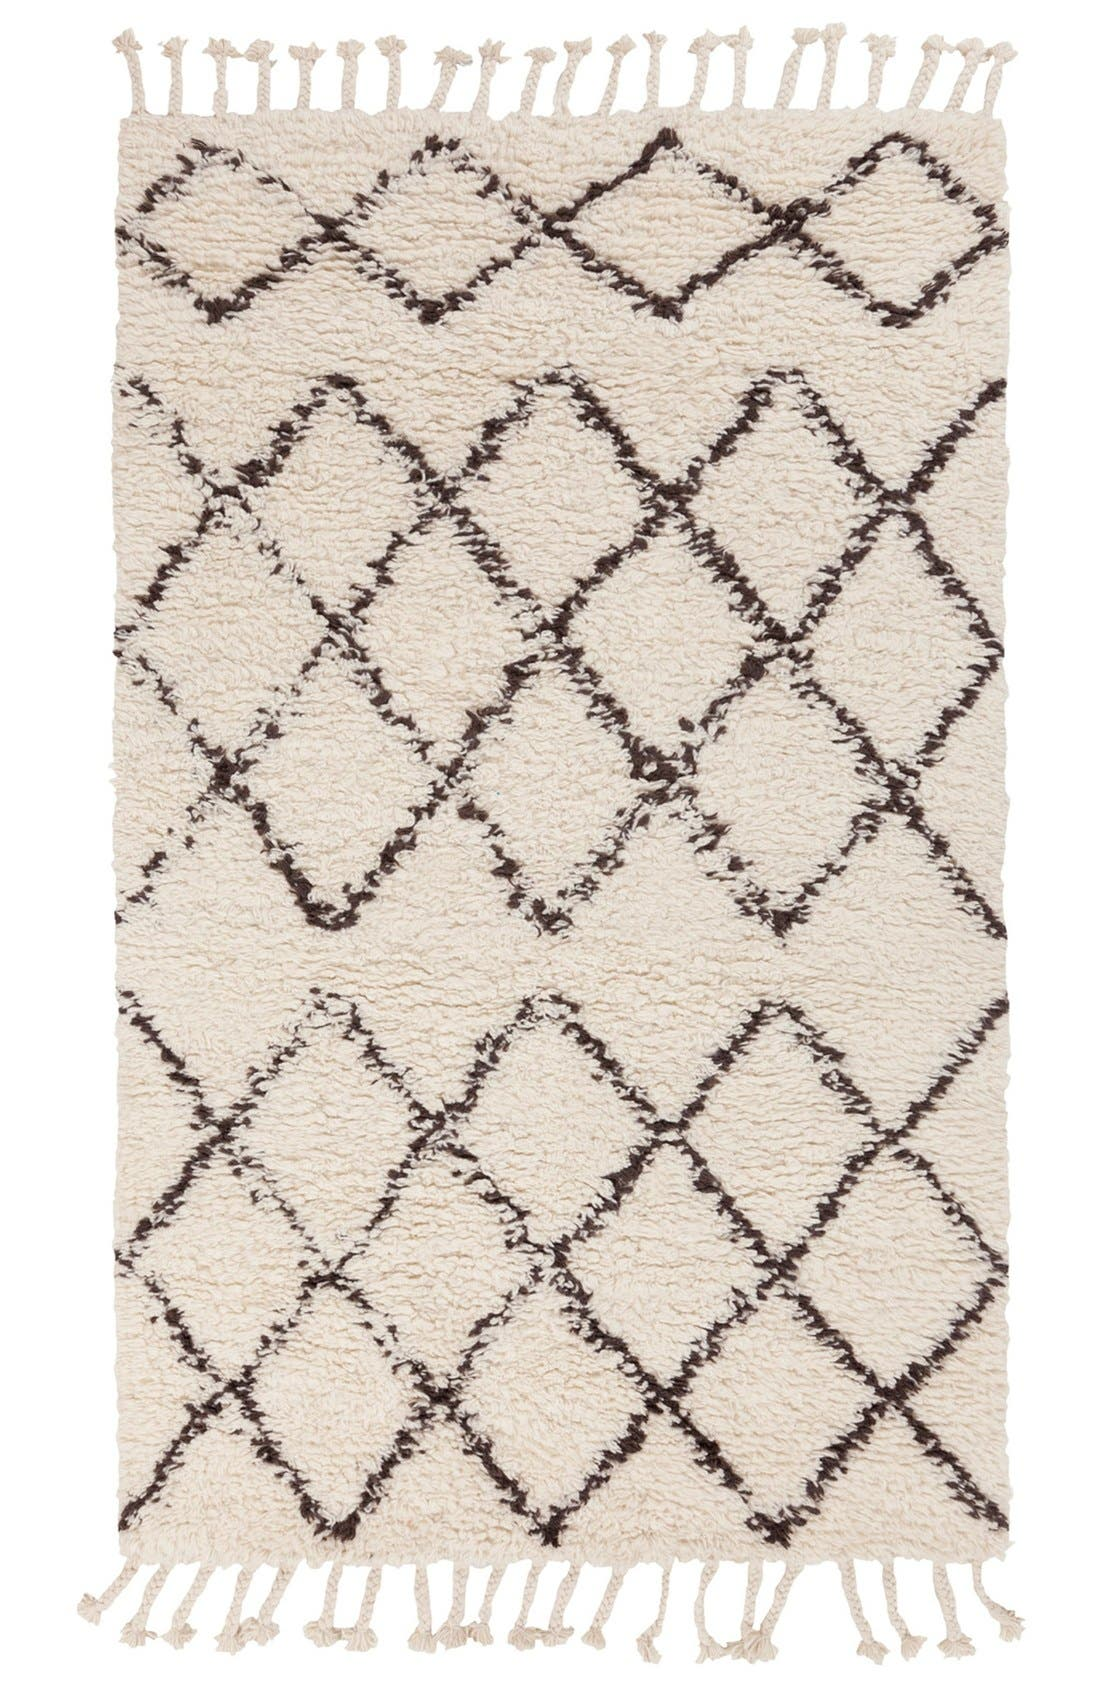 'Sherpa - Lines' Wool Rug,                             Main thumbnail 1, color,                             900